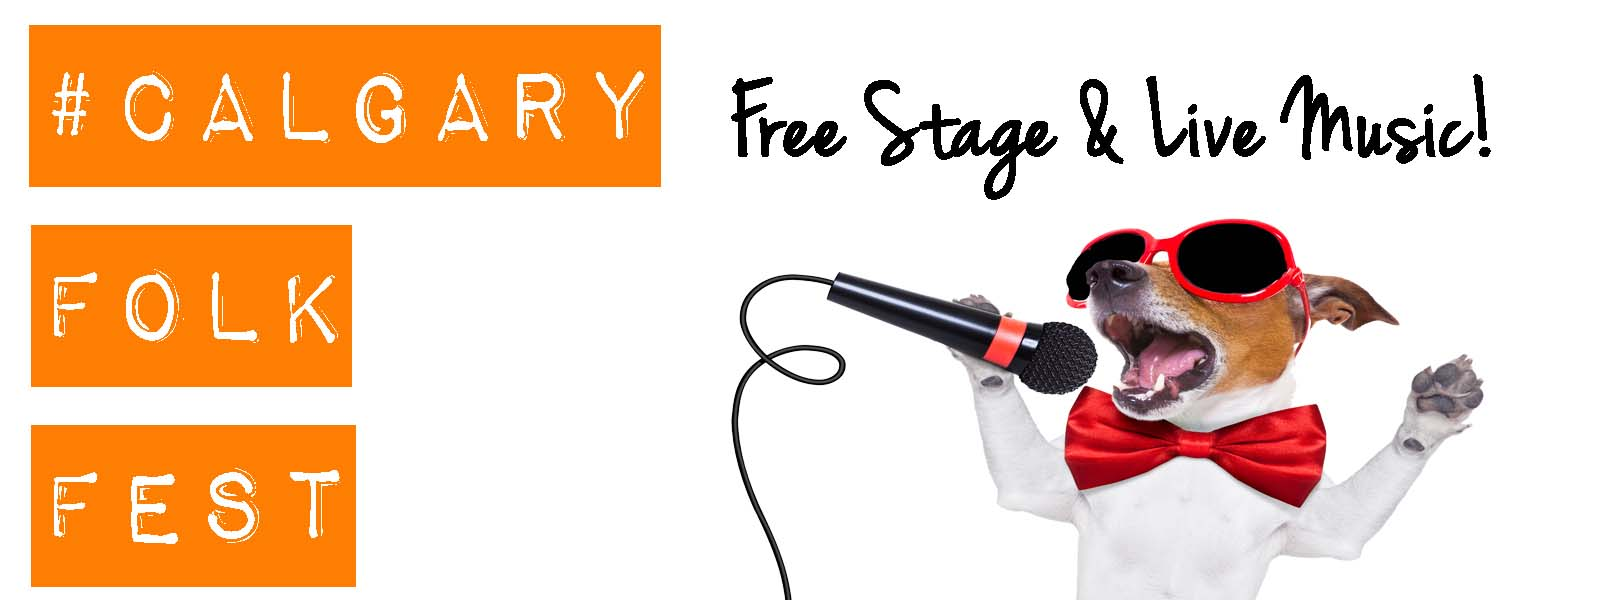 Listen to live music with your dog at the Folk Festival Free stage!